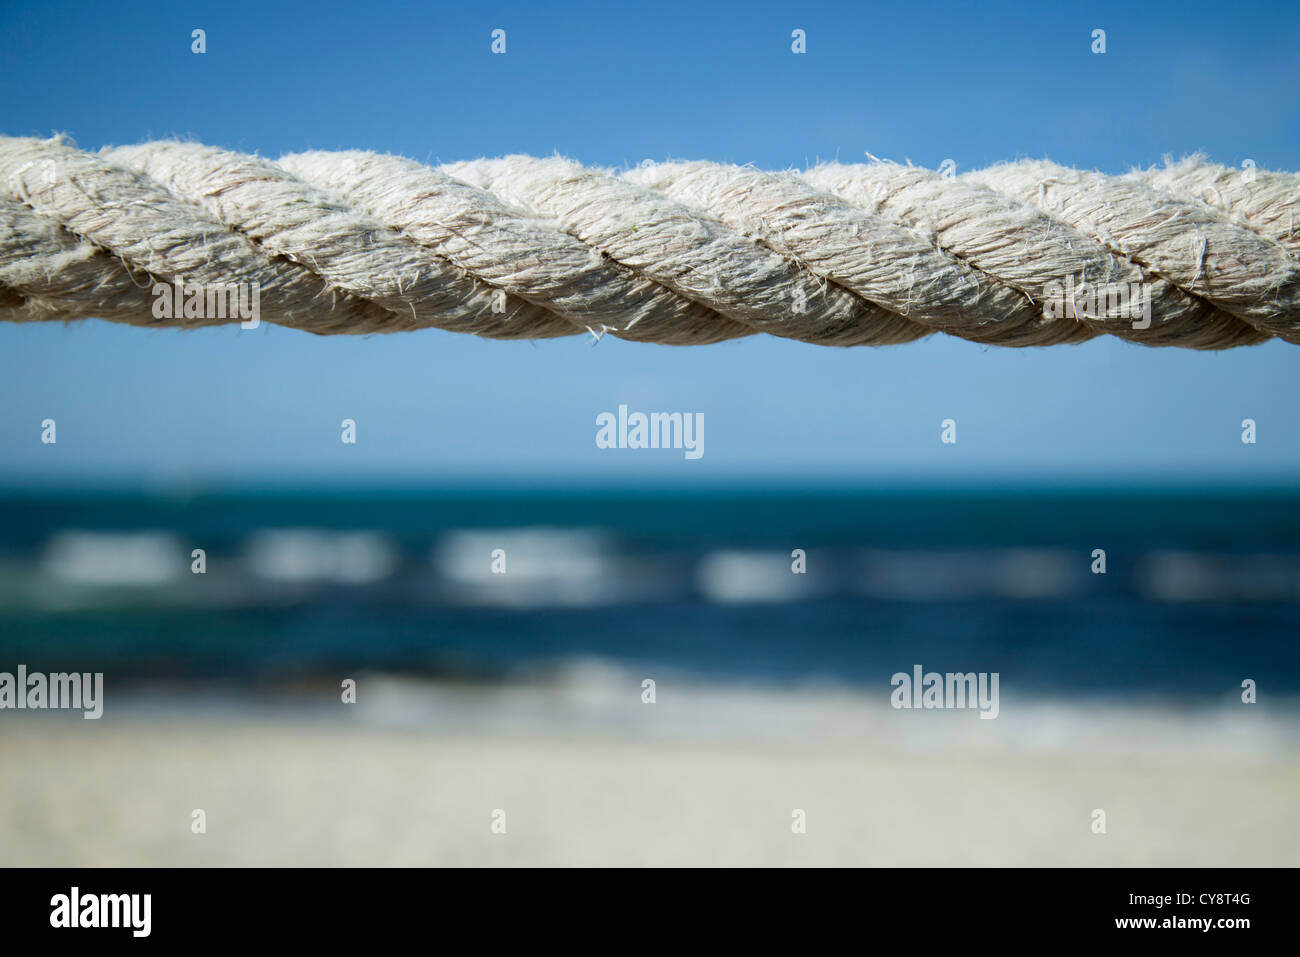 Close-up of weathered rope with beach in background - Stock Image